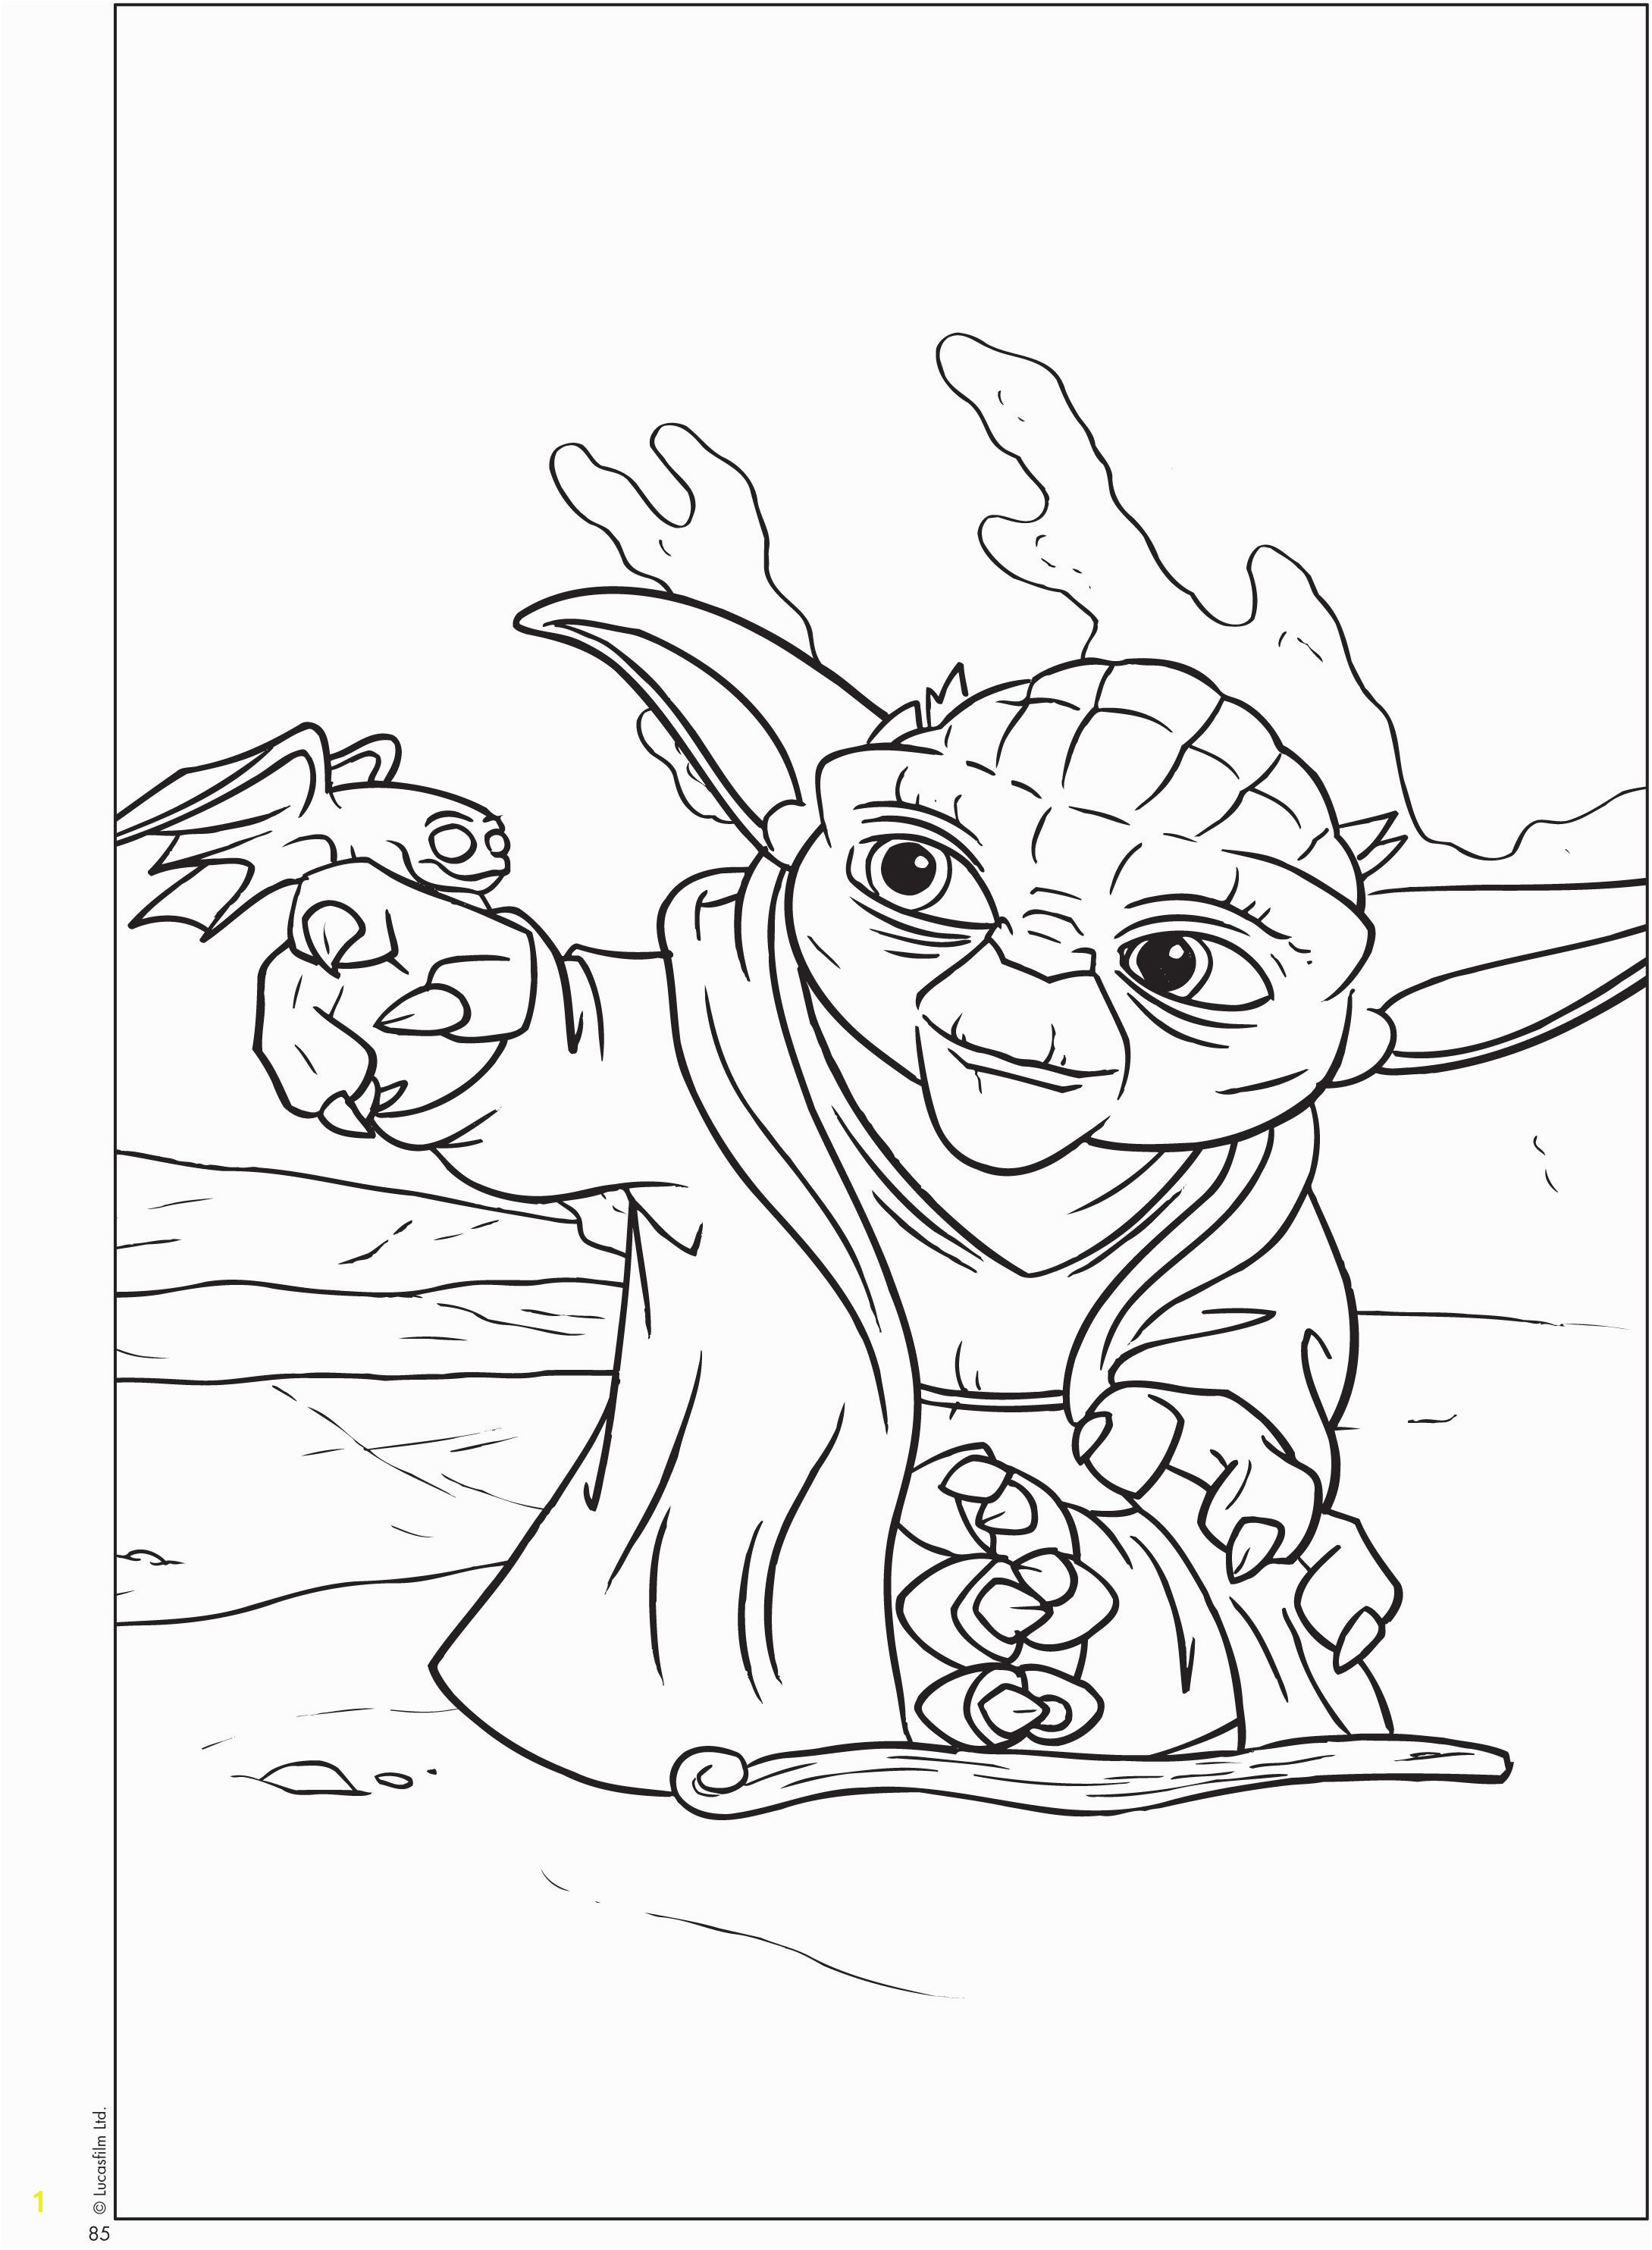 Star Wars Free Coloring Pages to Print Free Printable Star Wars Coloring Sheets In 2018